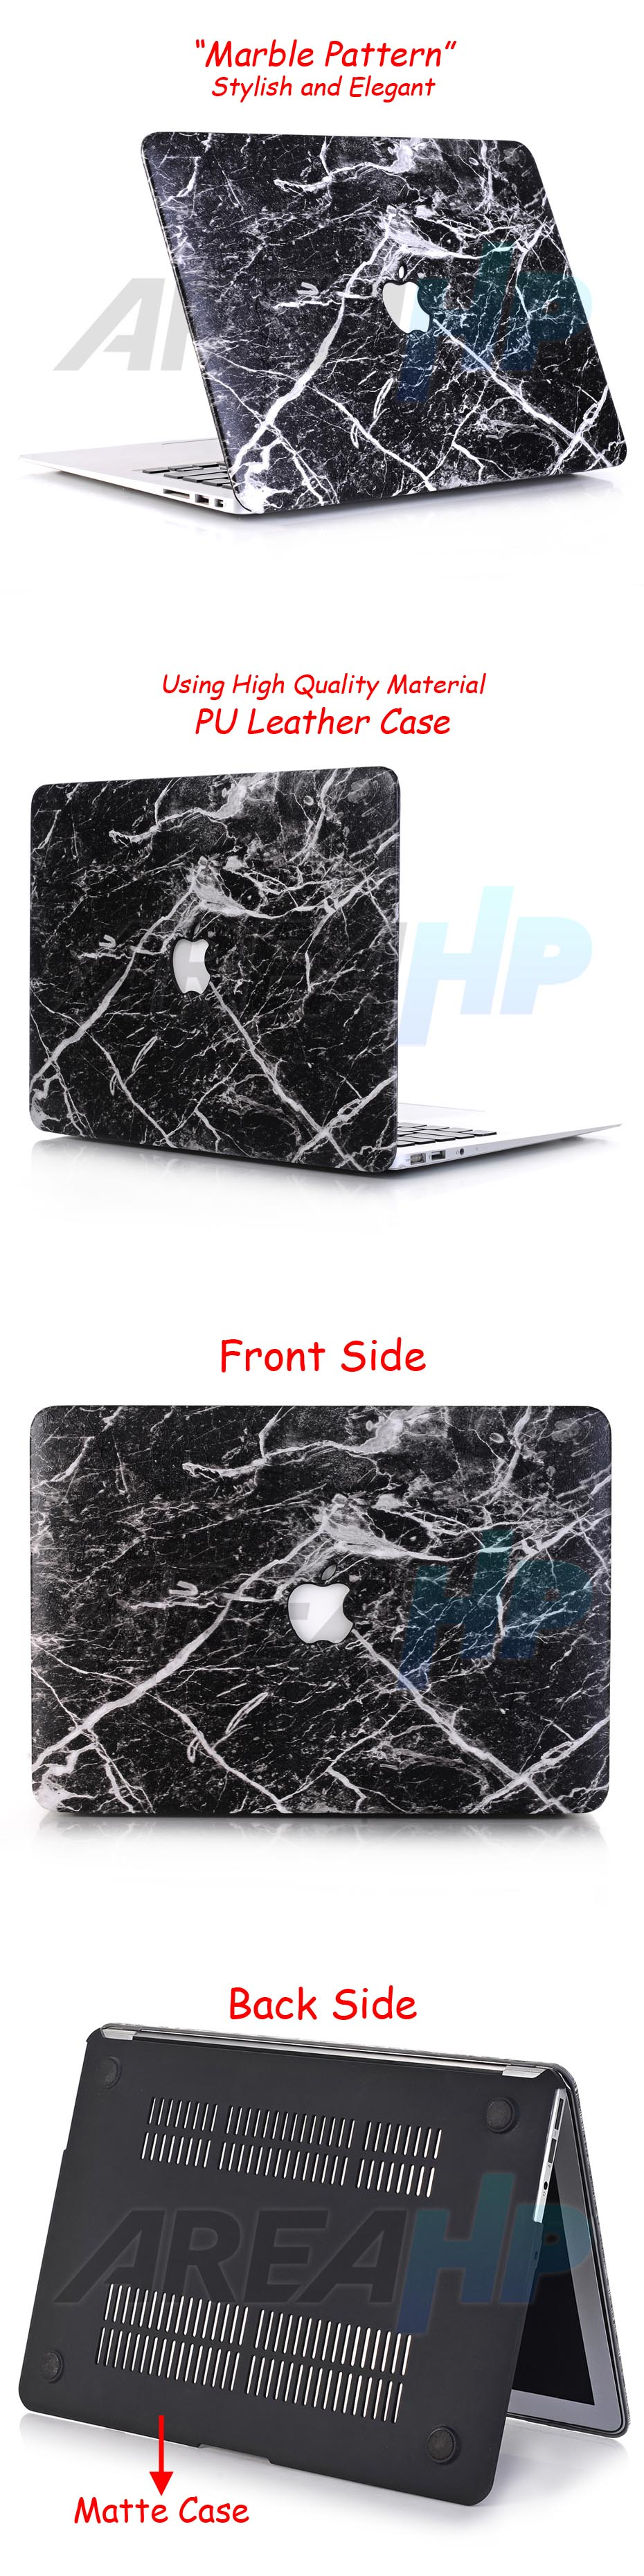 Marble Pattern Black White Case Macbook Overview